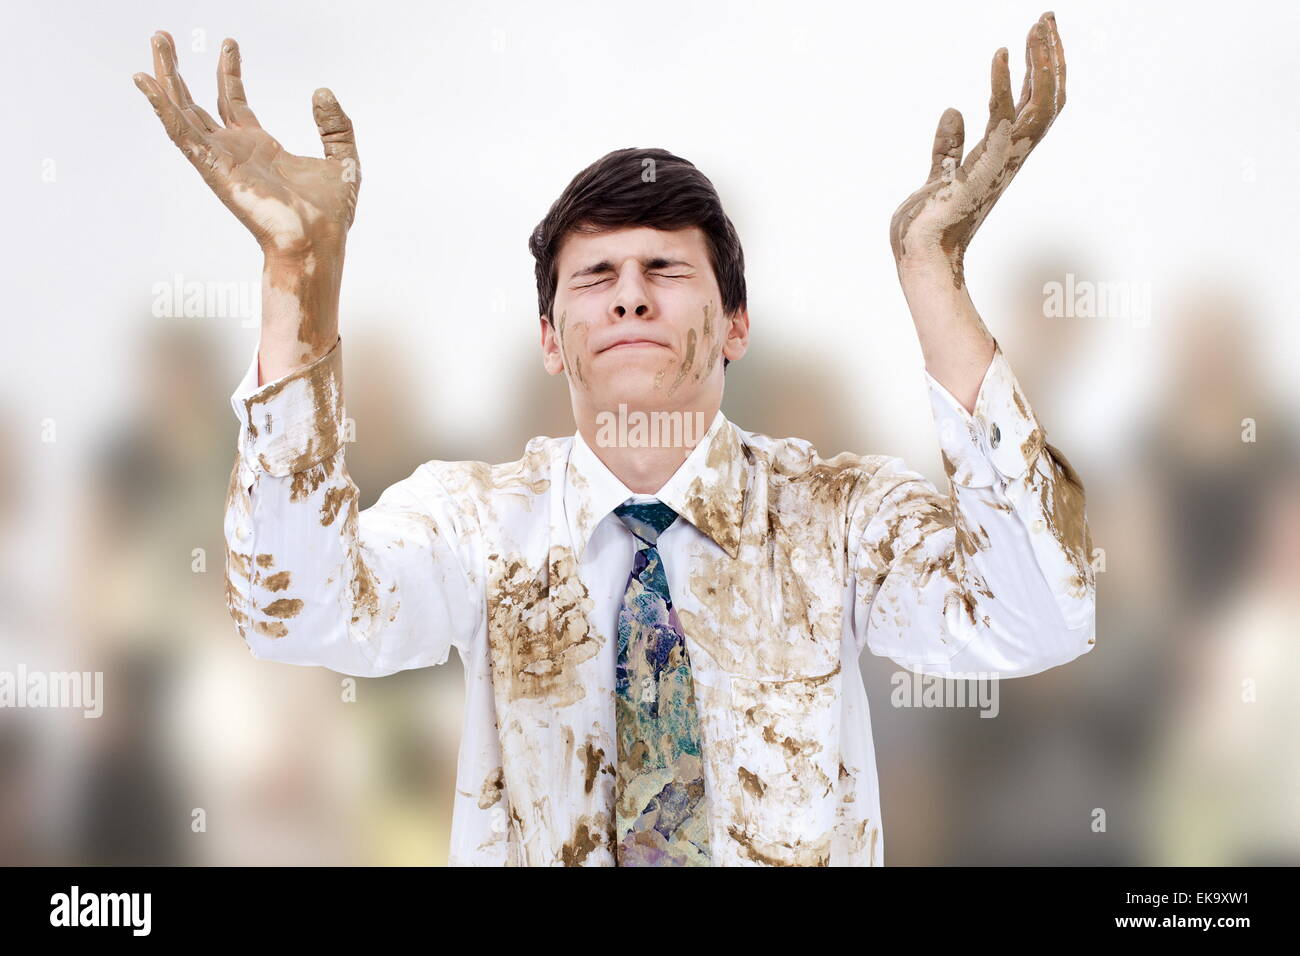 Dirty hands - Stock Image